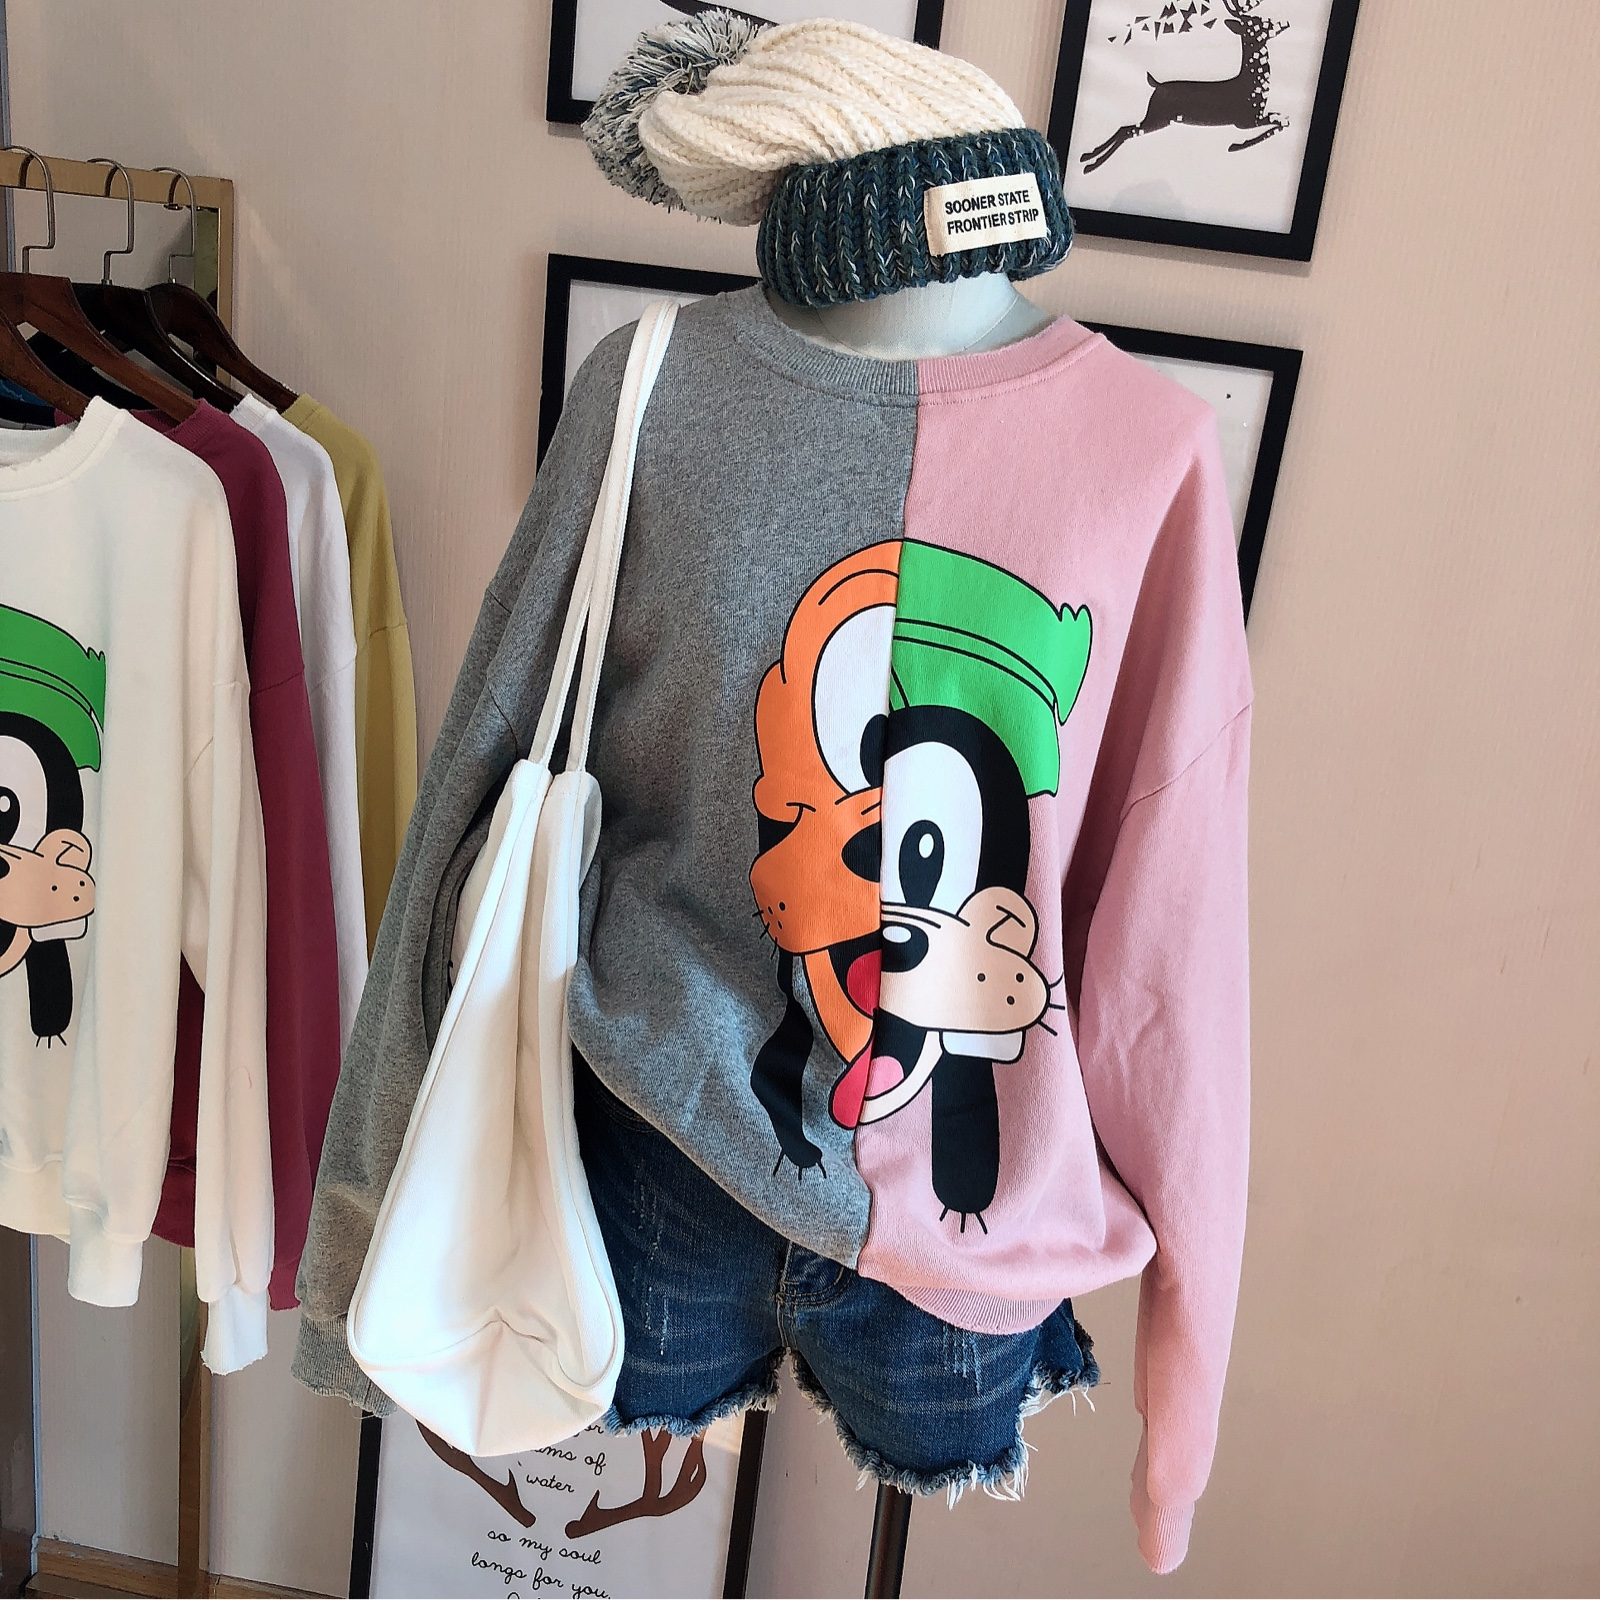 2020 Sweatshirt Women's Spring Autumn Thin New Korean  Fashion Lazy Style Cartoon Women Hoodies Tops